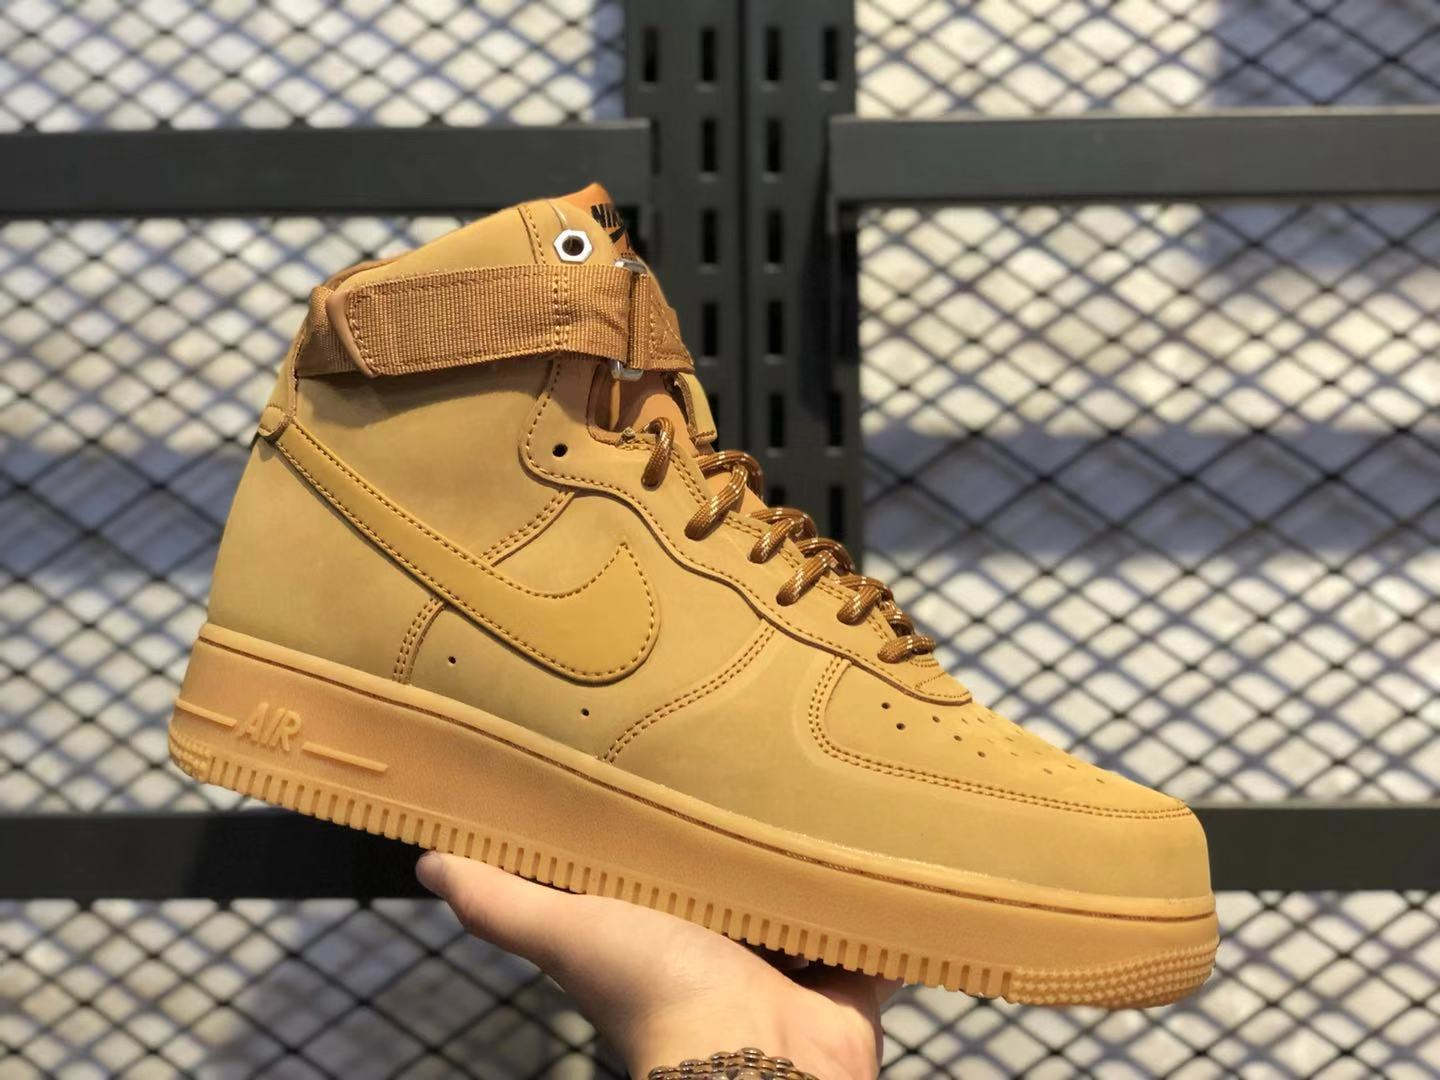 Nike Air Force 1 High Flax/Wheat-Gum Light Brown-Black For Online Sale